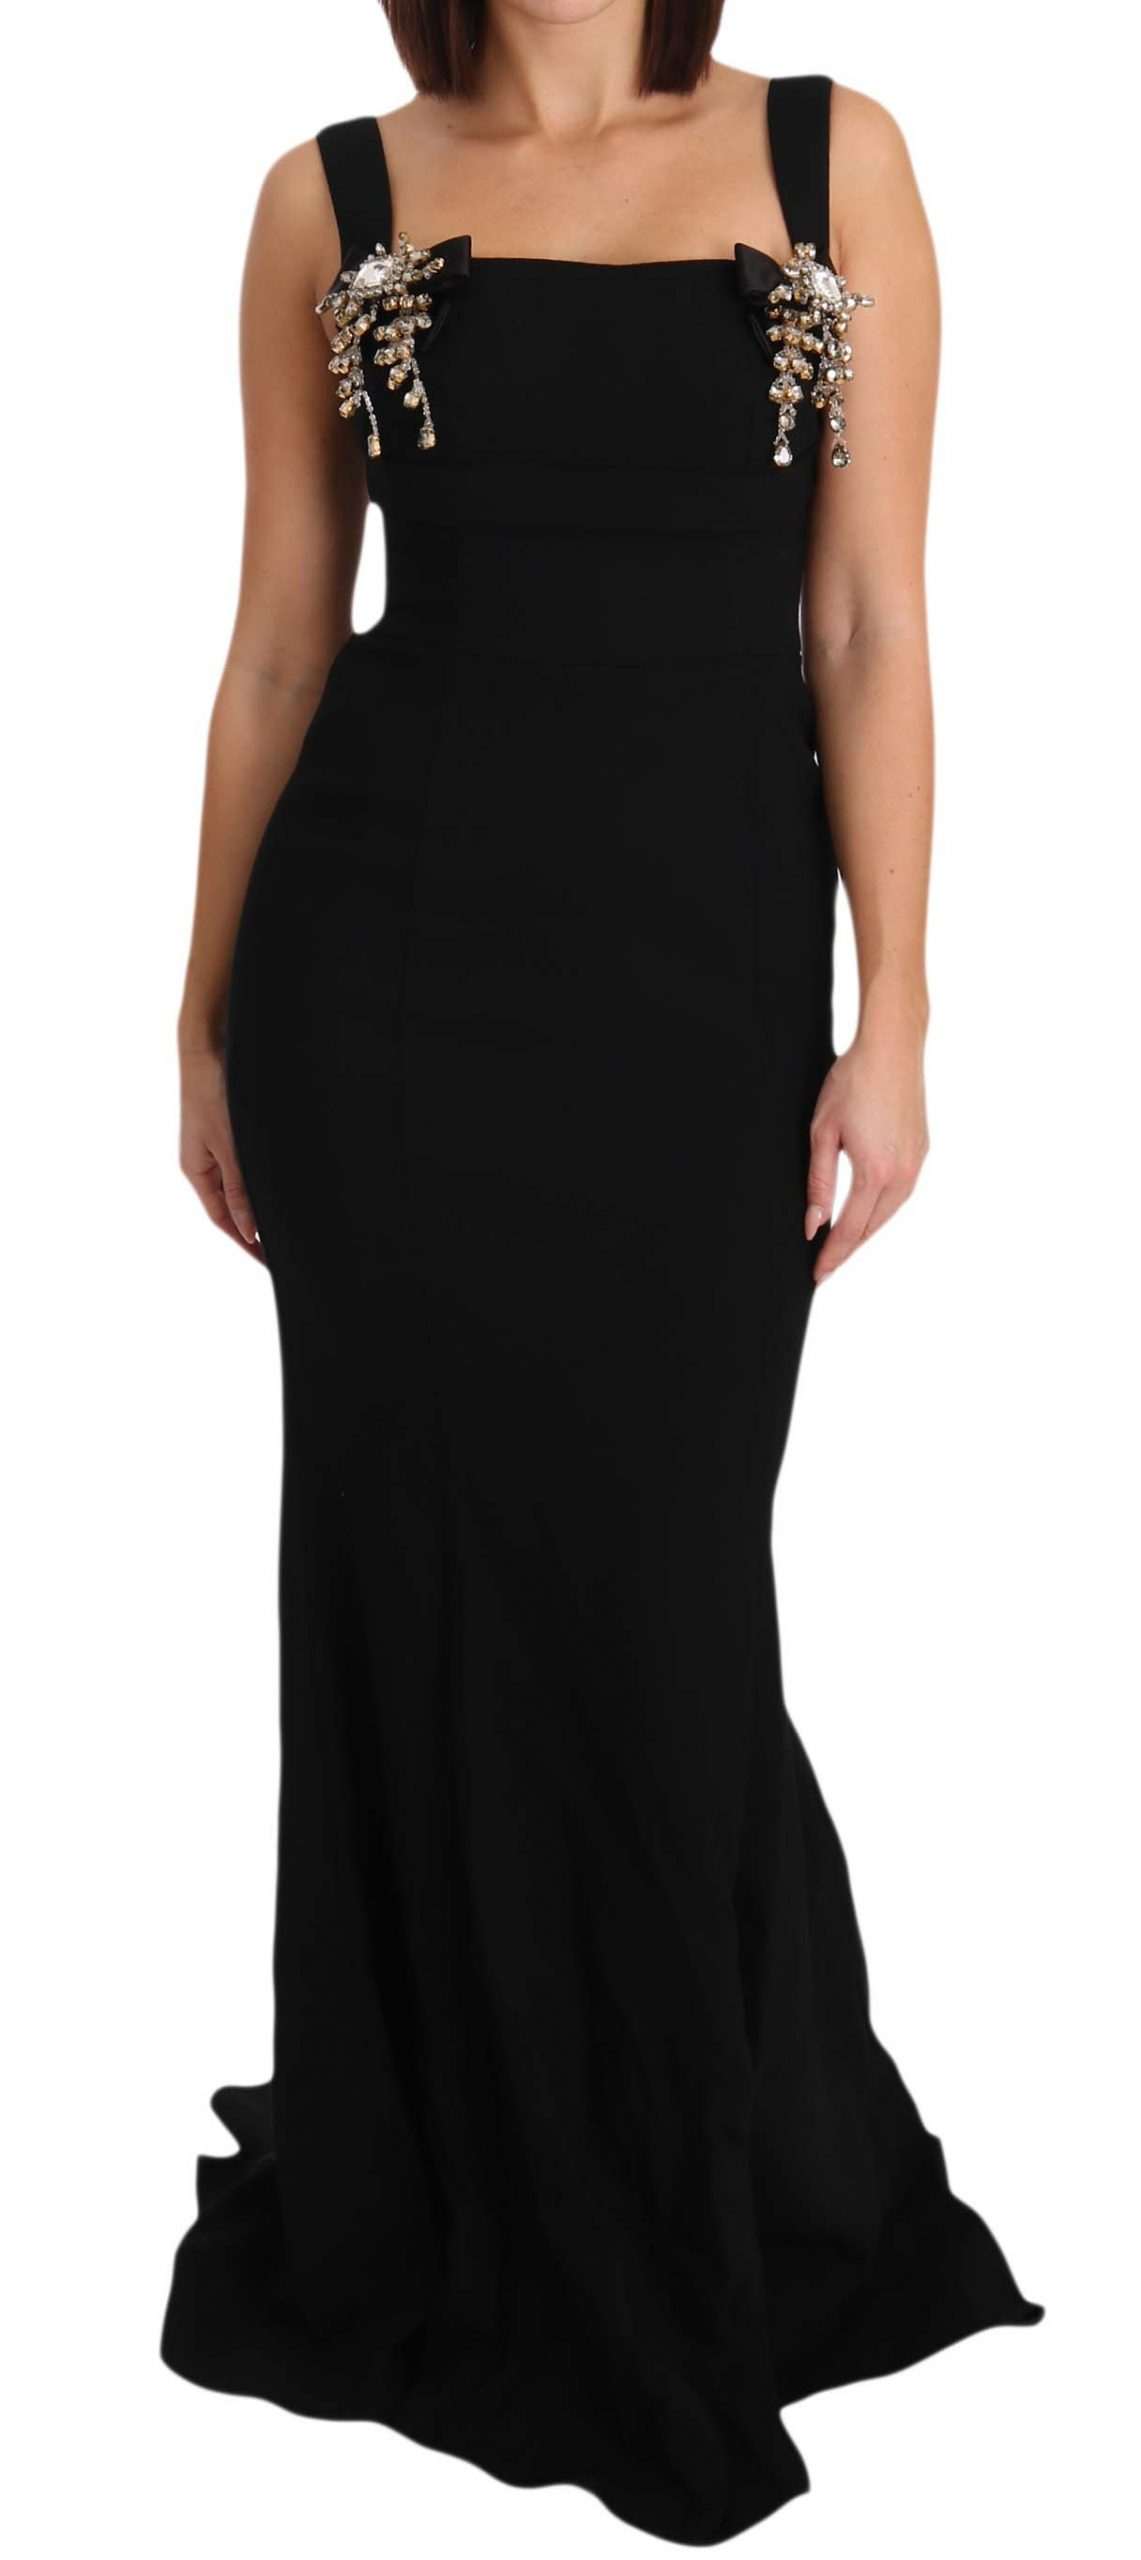 Dolce & Gabbana Women's Stretch Crystal Fit Flare Gown Dress Black DR1591 - IT40|S